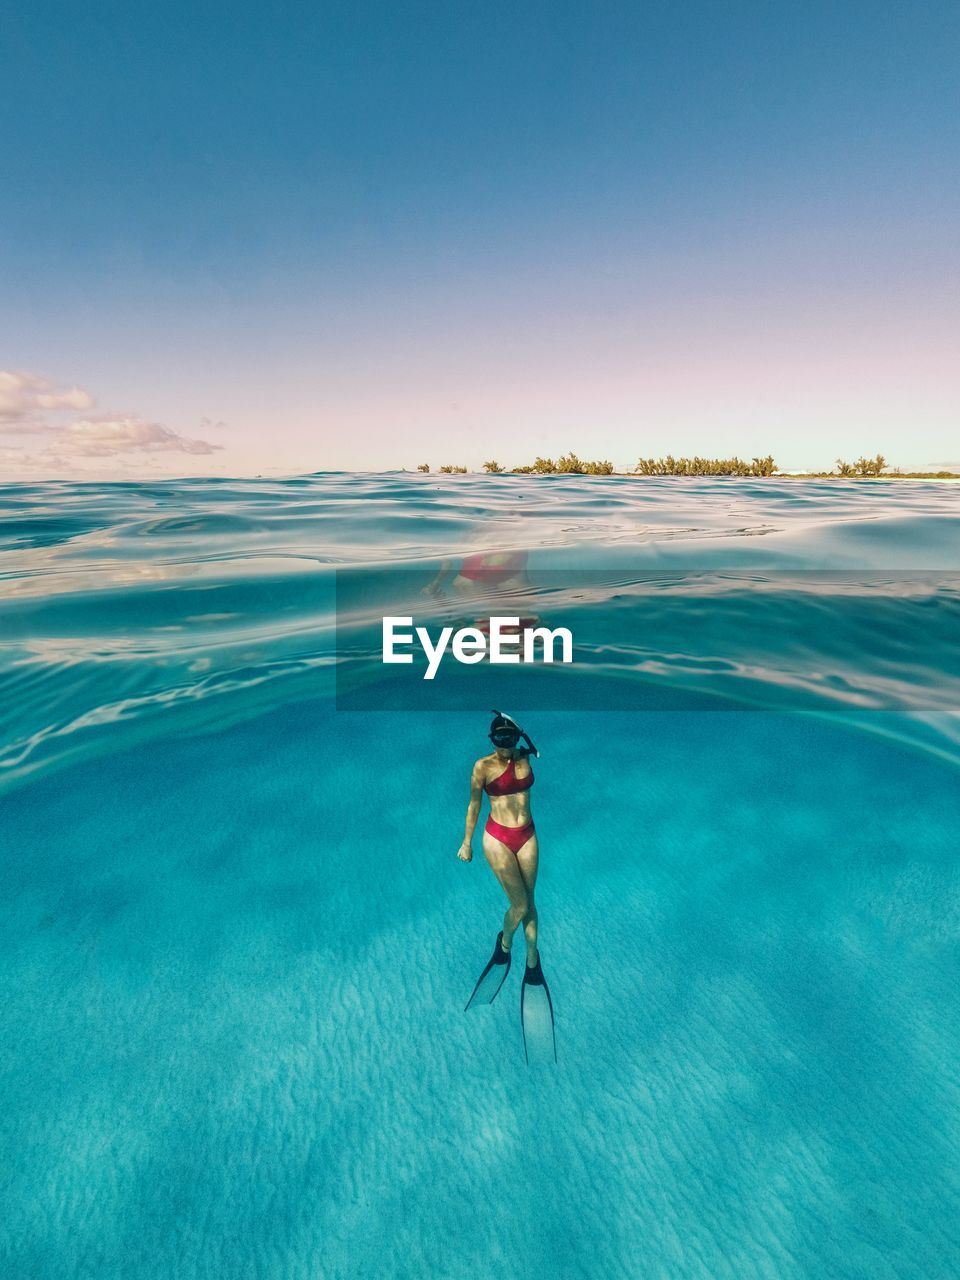 sea, water, one person, beauty in nature, leisure activity, swimwear, real people, lifestyles, blue, sky, nature, aquatic sport, adventure, underwater, bikini, sport, holiday, vacations, snorkeling, outdoors, undersea, turquoise colored